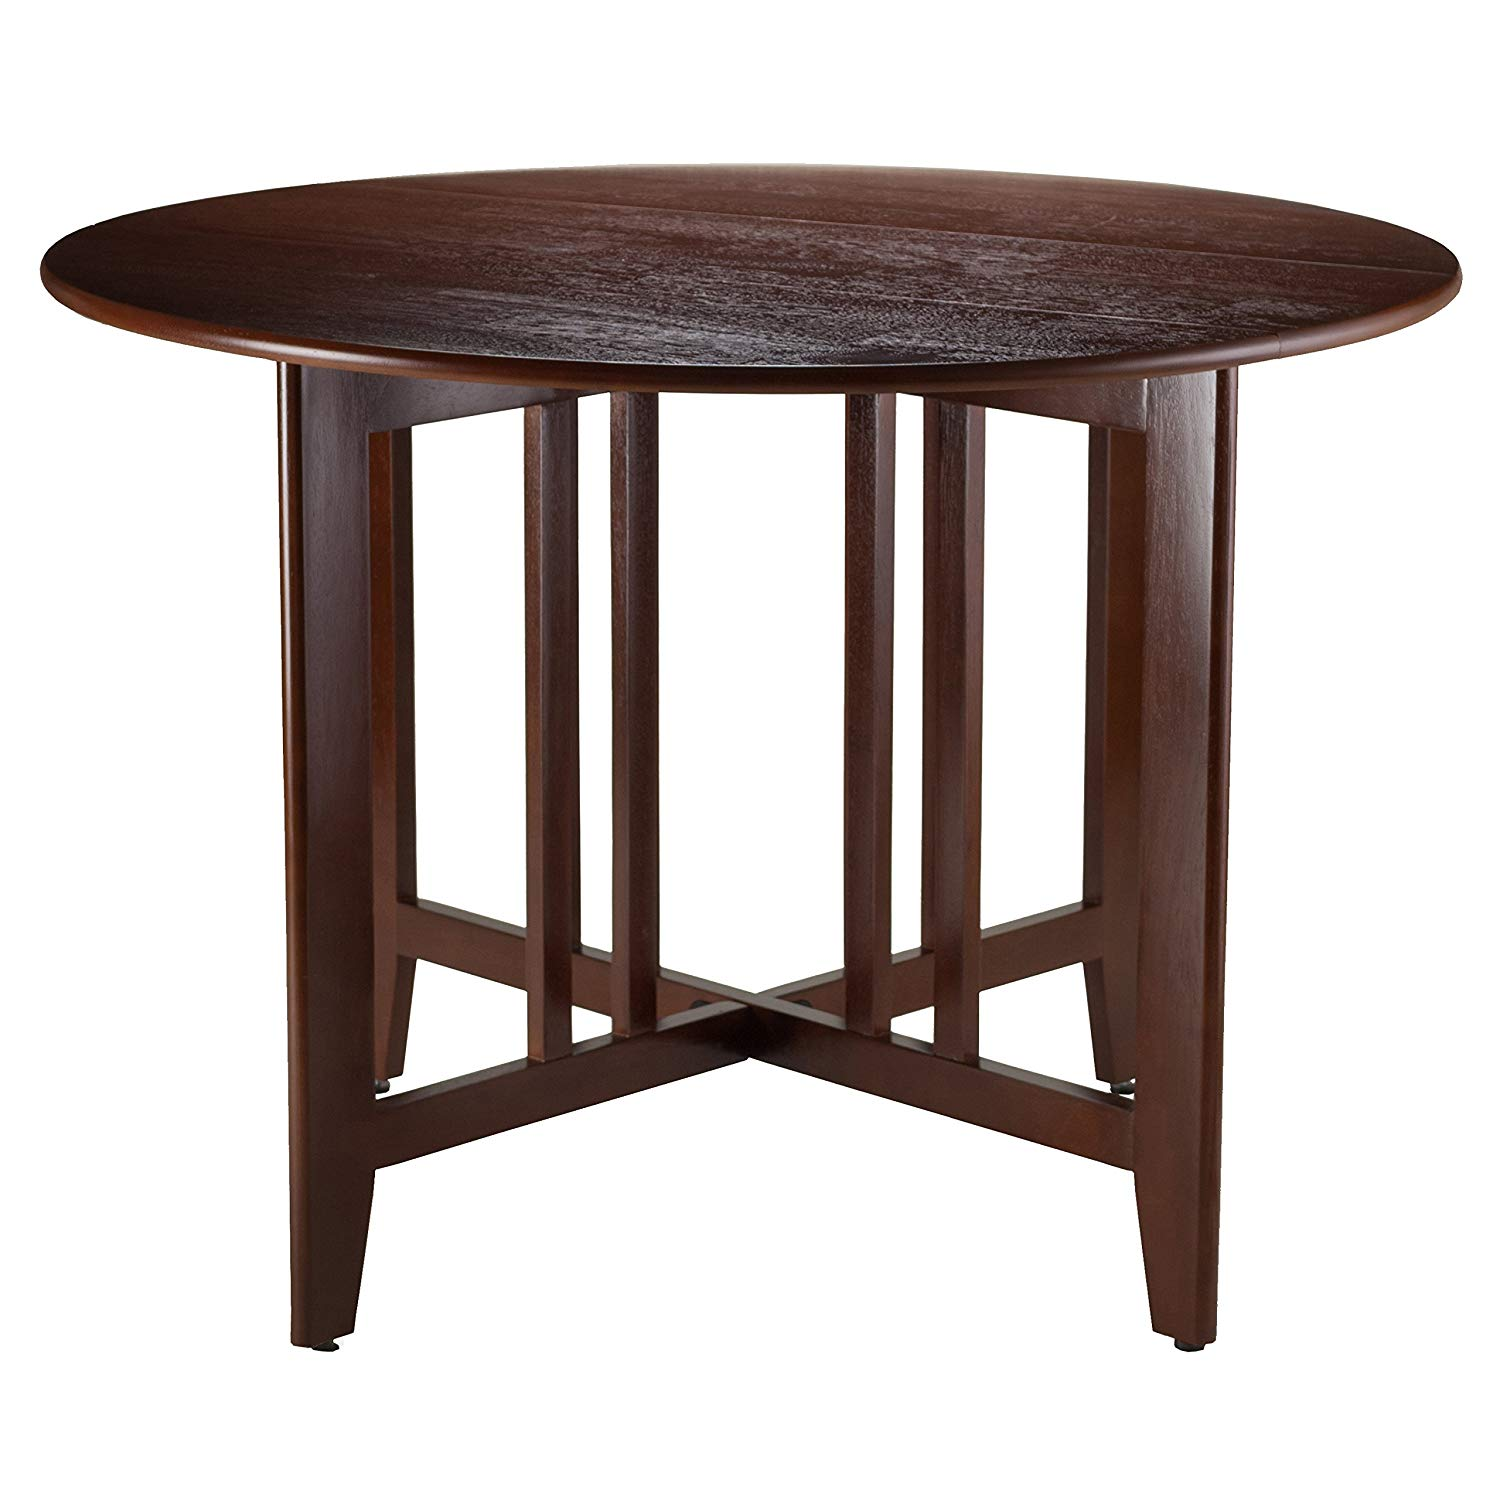 winsome wood alamo double drop leaf round accent table with screw legs mission walnut inch tables ikea kallax boxes stratford wicker folding bronze white chairside end garden